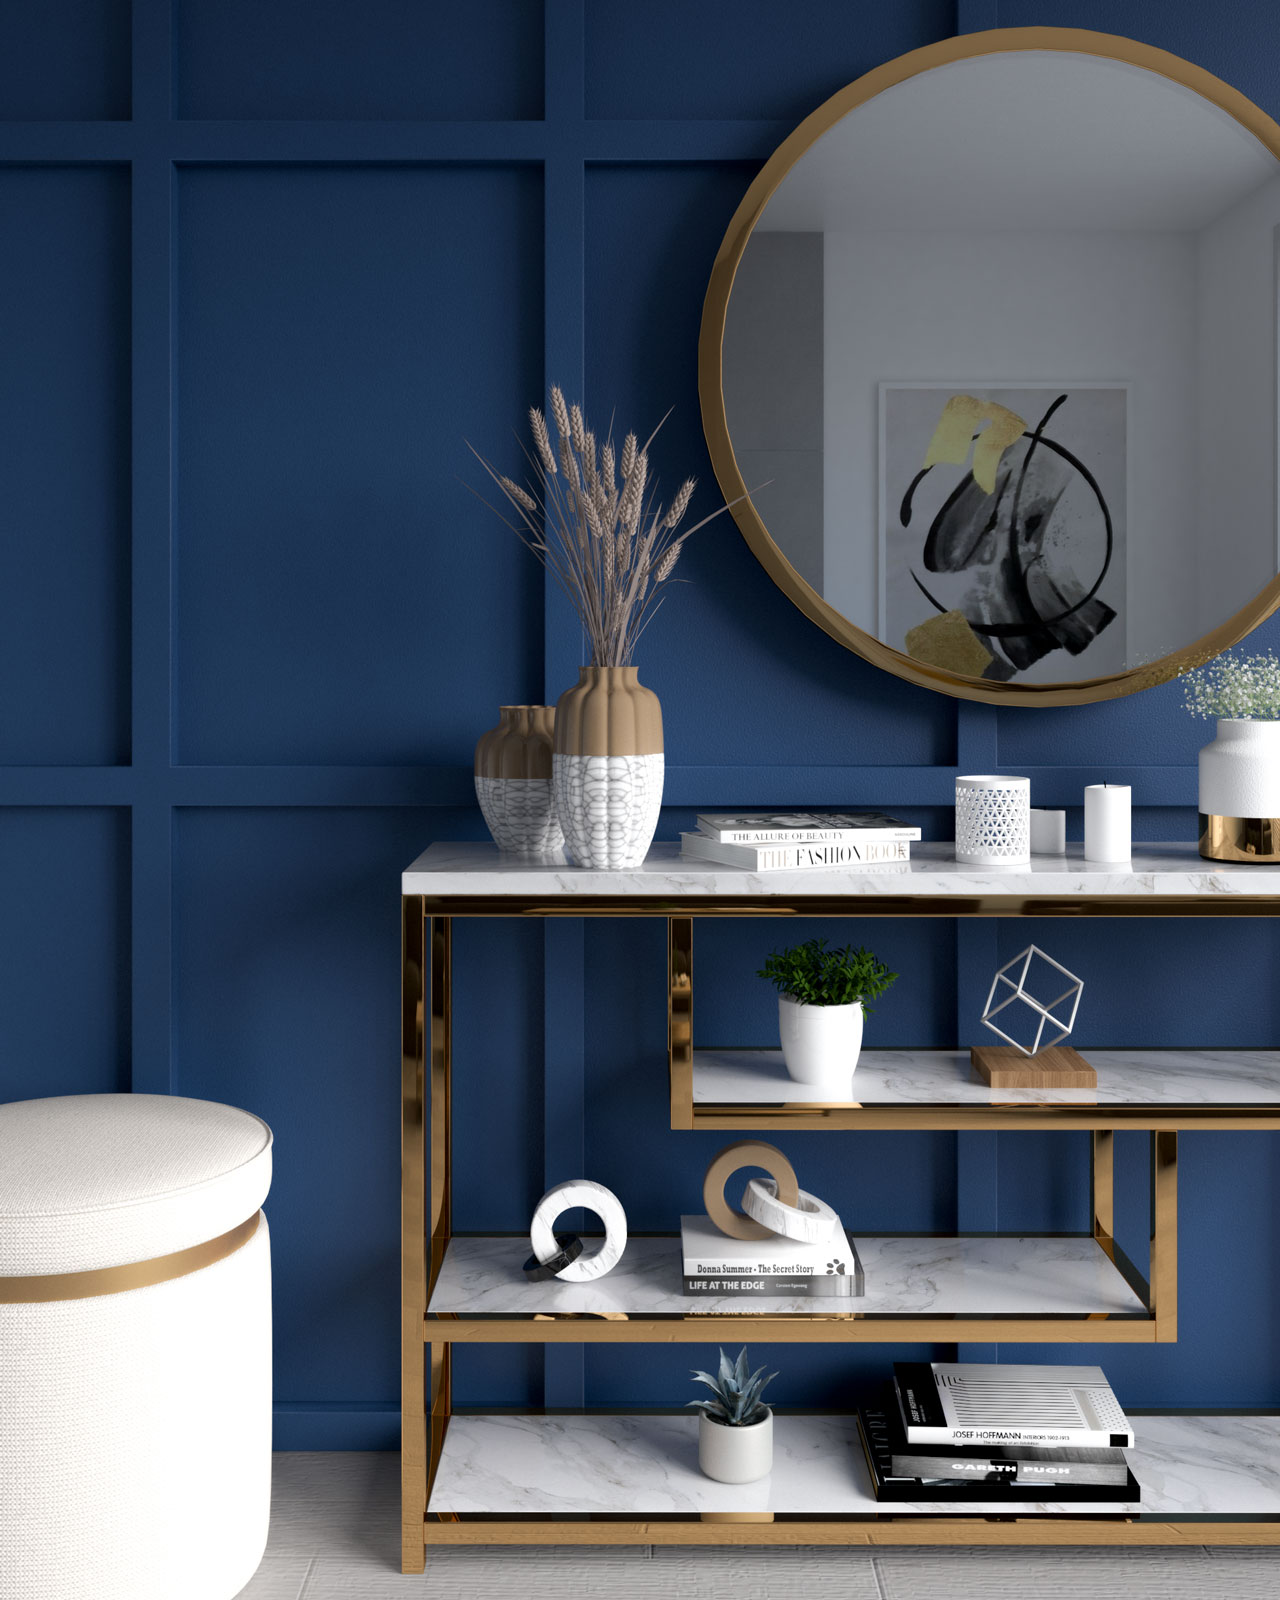 Indigo blue wall with gold accents